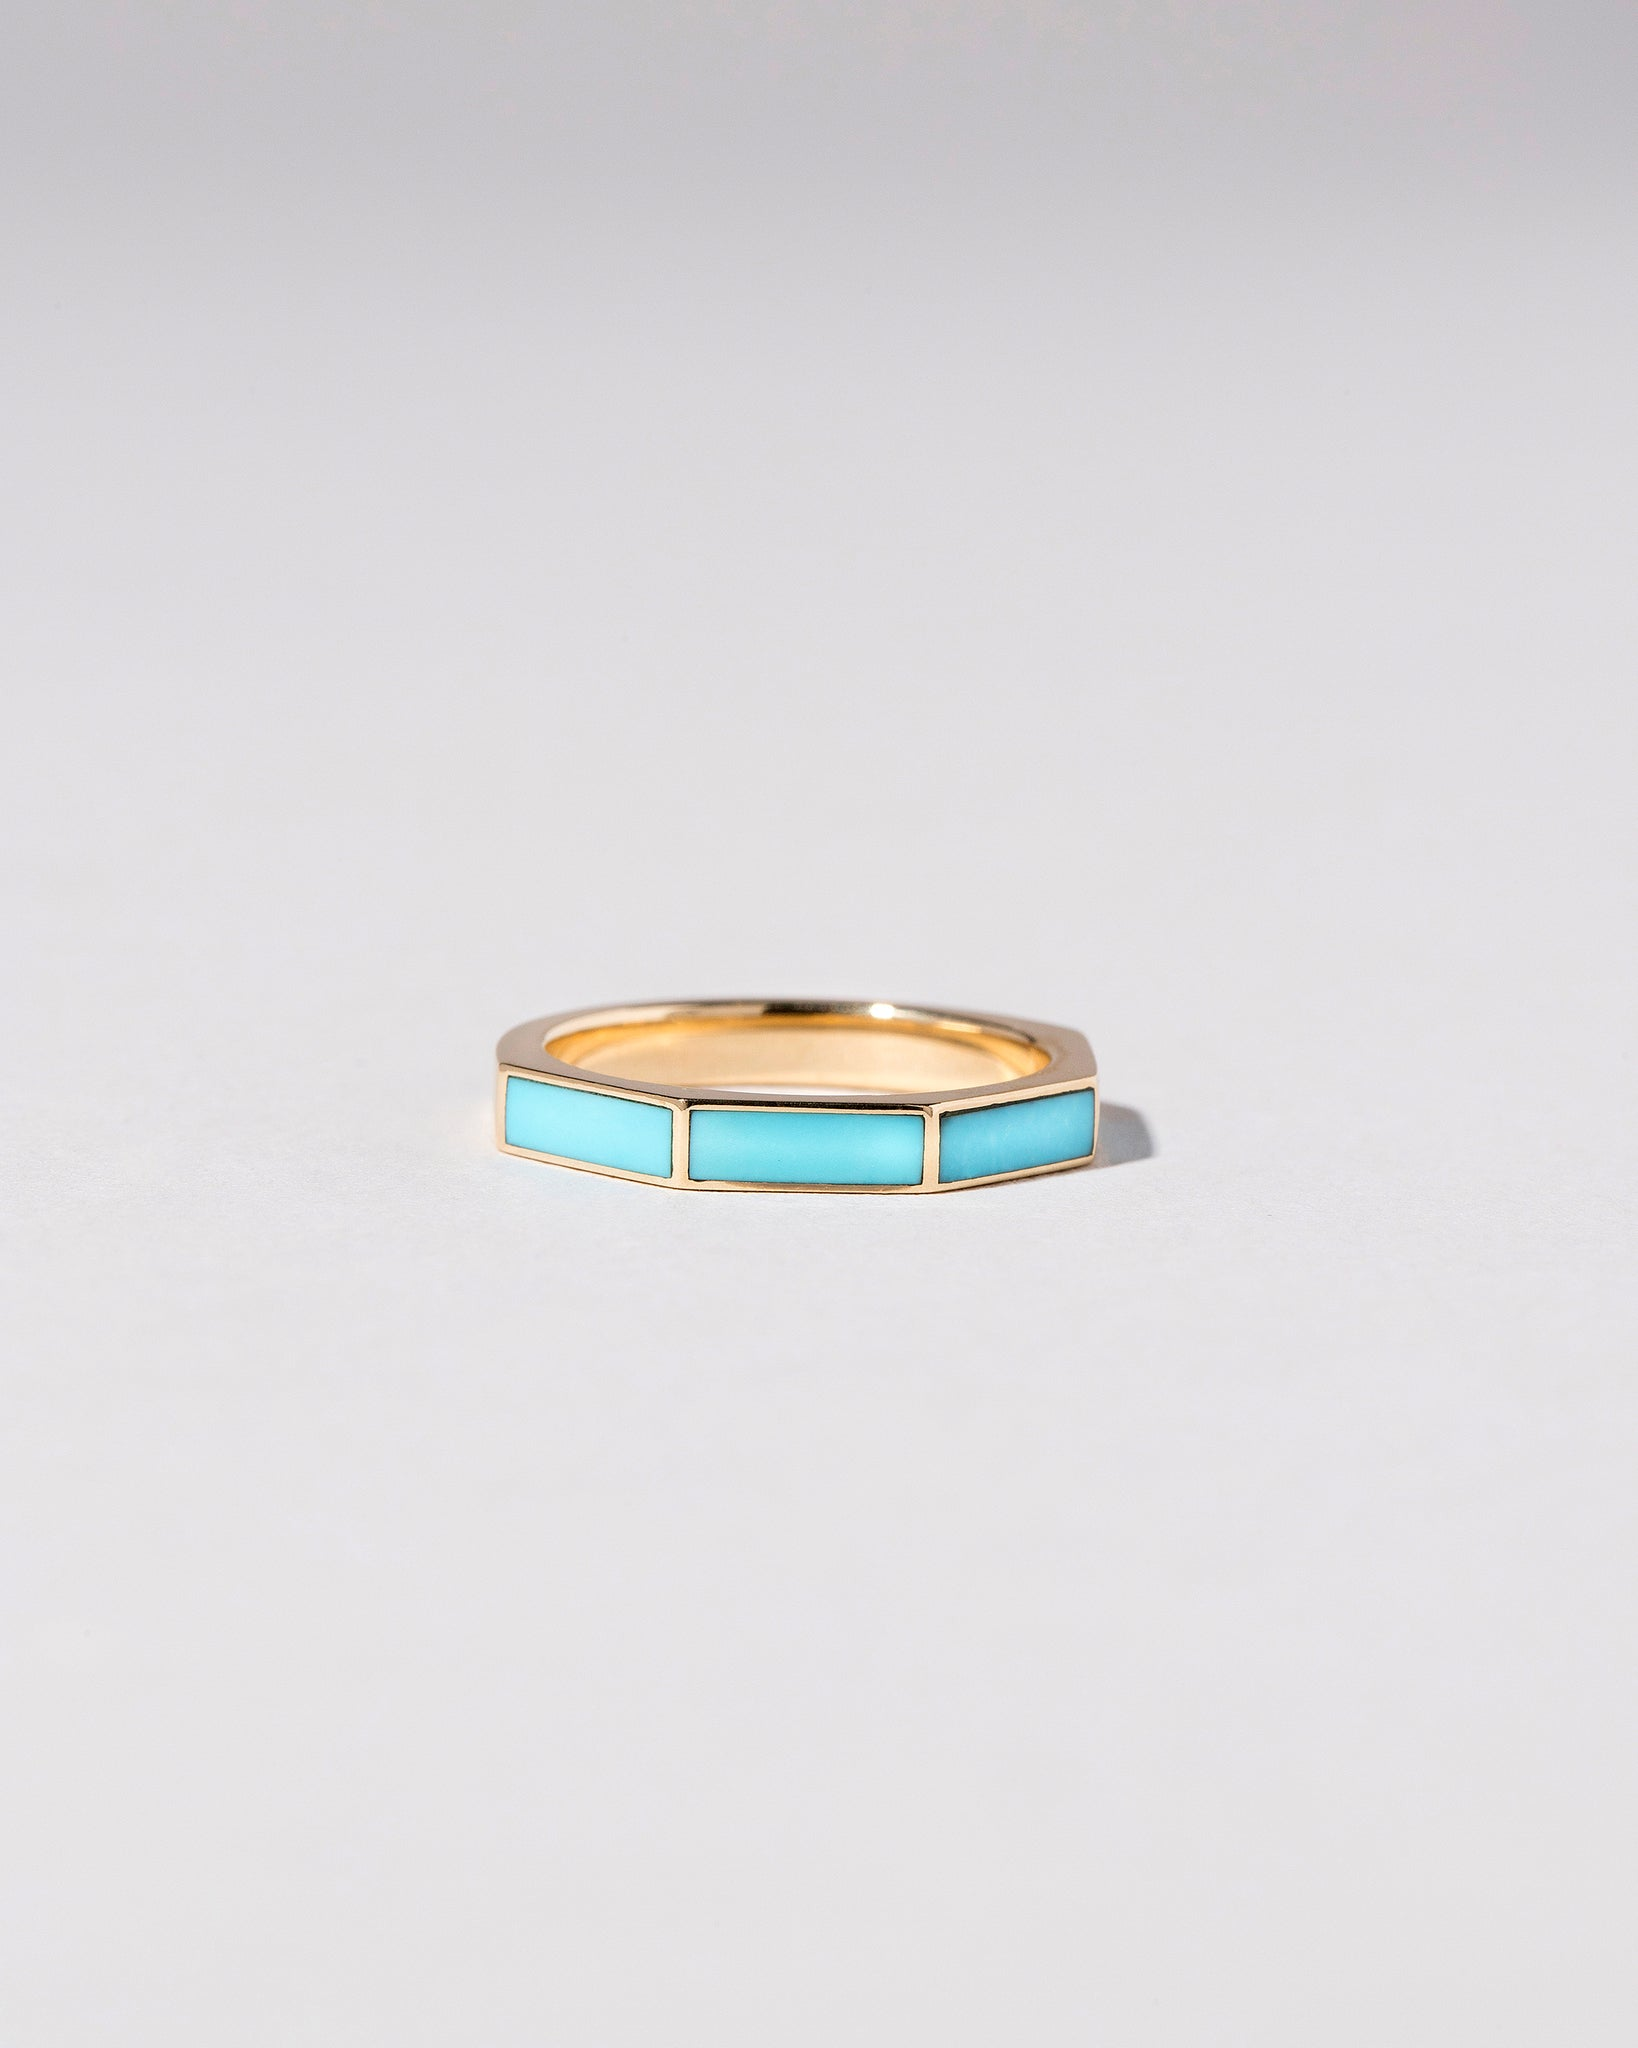 Segmented Inlay Band with Turquoise